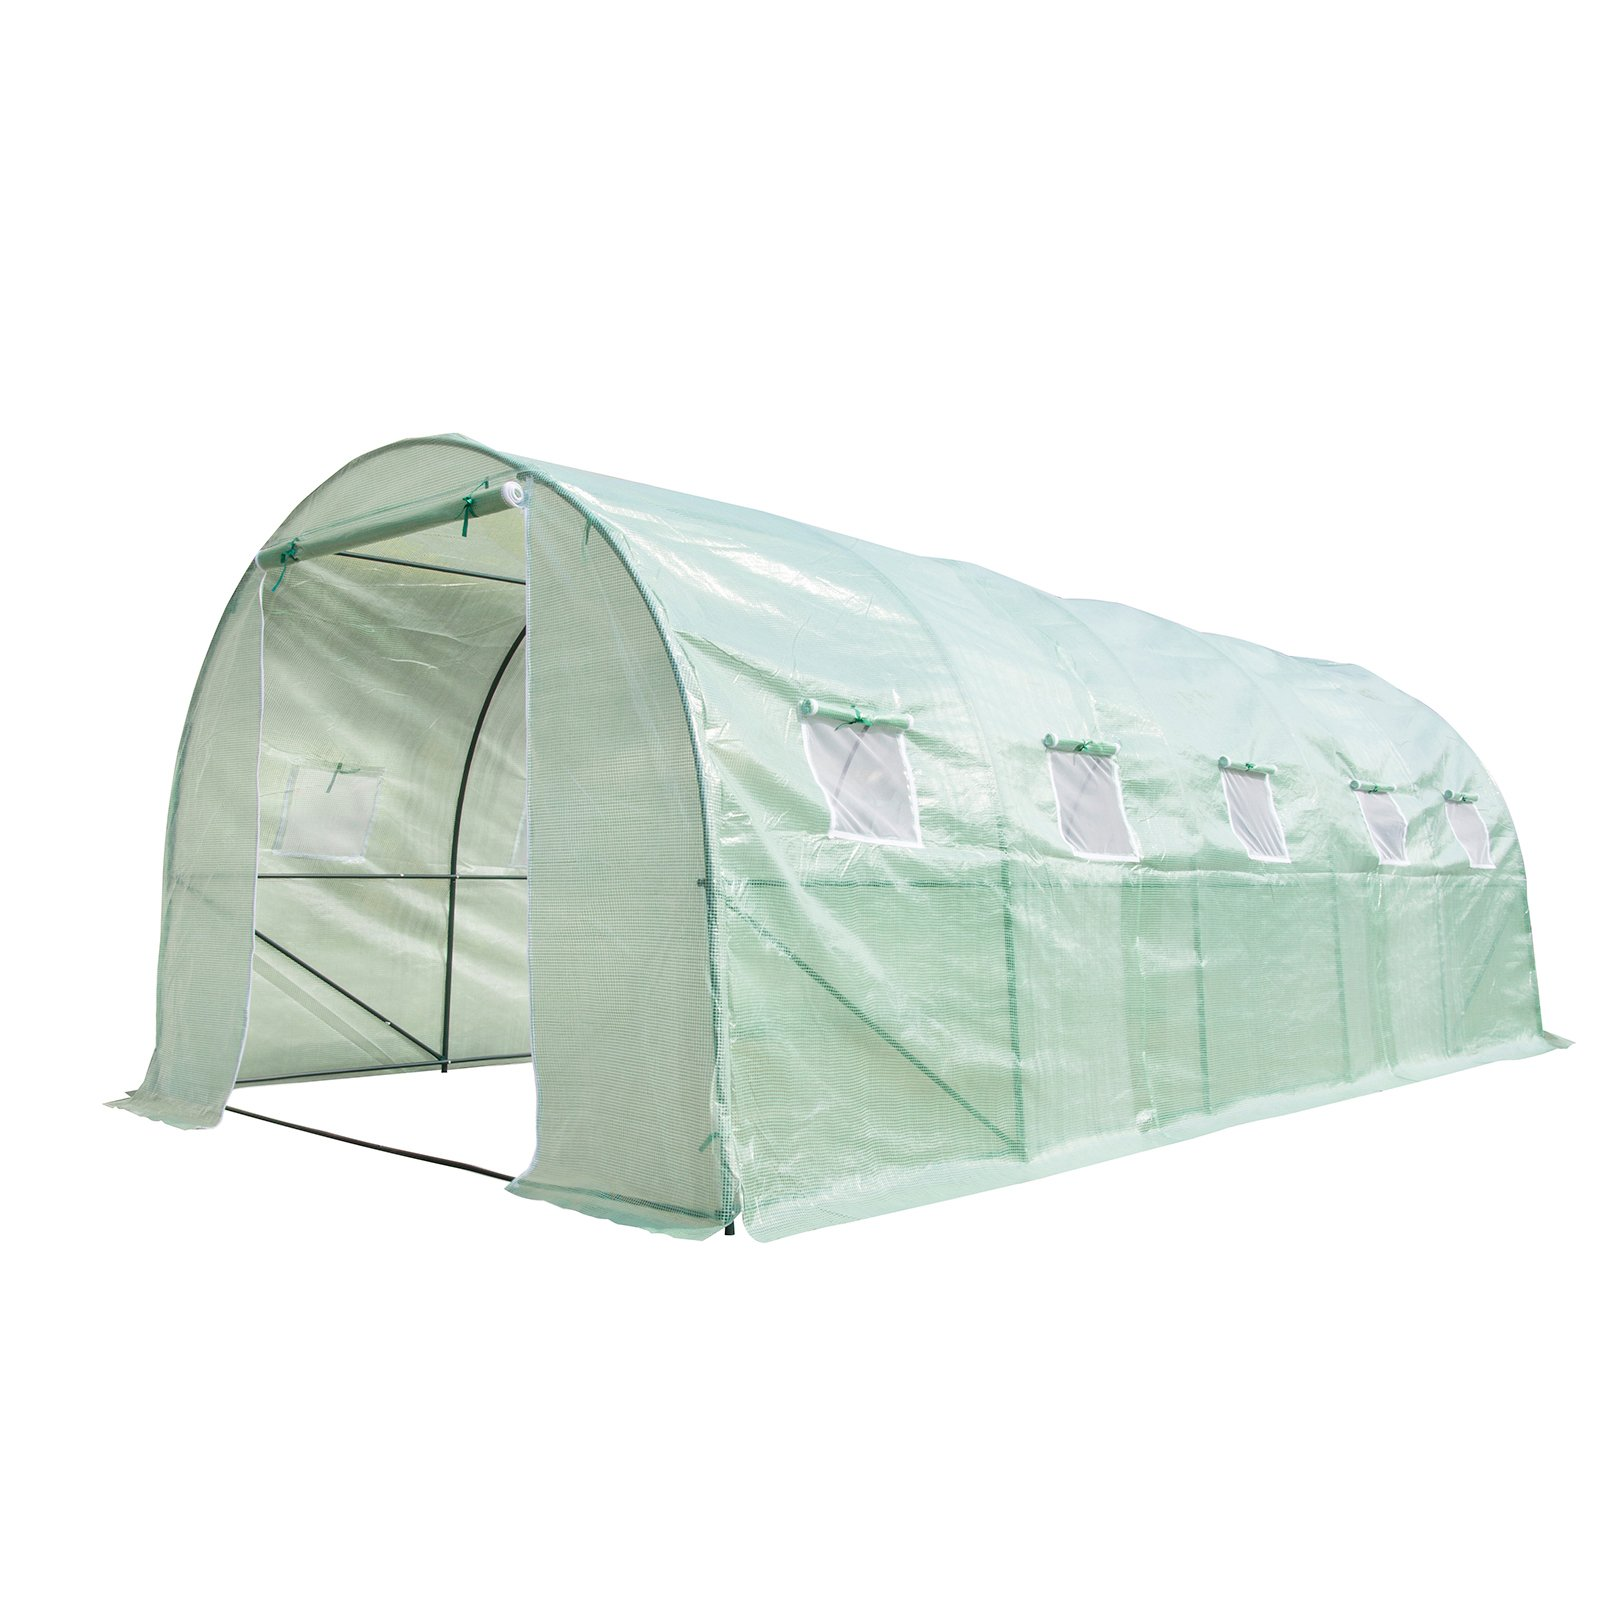 Caymus 20'x10'x7' Portable Walk In Outdoor Tunnel Greenhouse Garden Hot House by Caymus